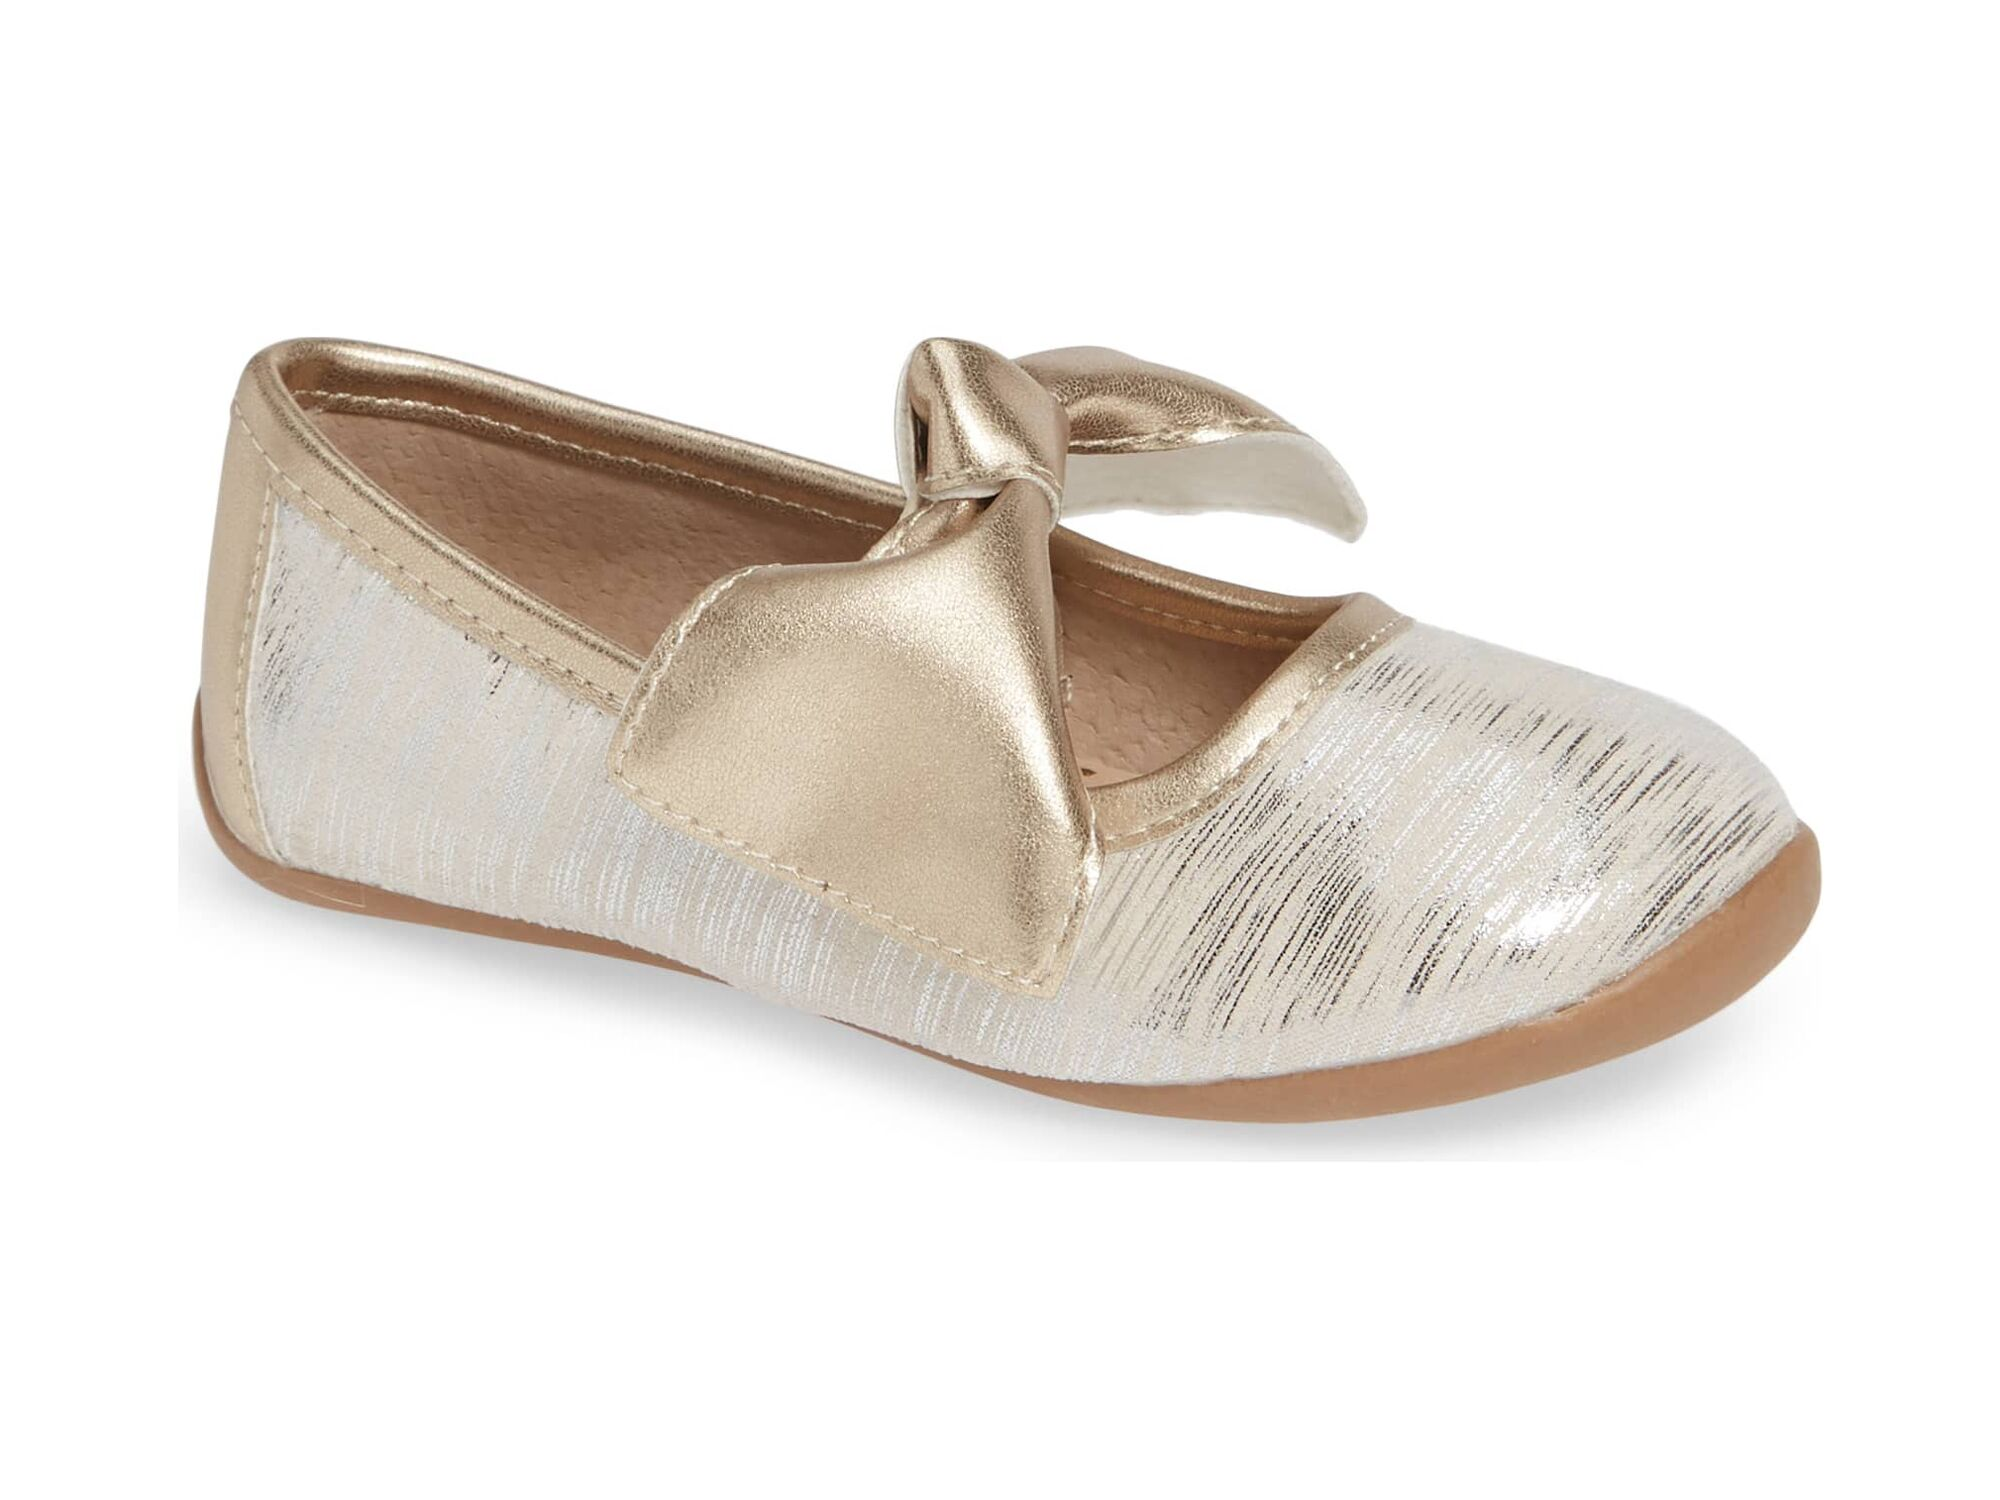 3137cde23c3a8 30 Flower Girls Shoes That'll Put Extra Pep in Her Step